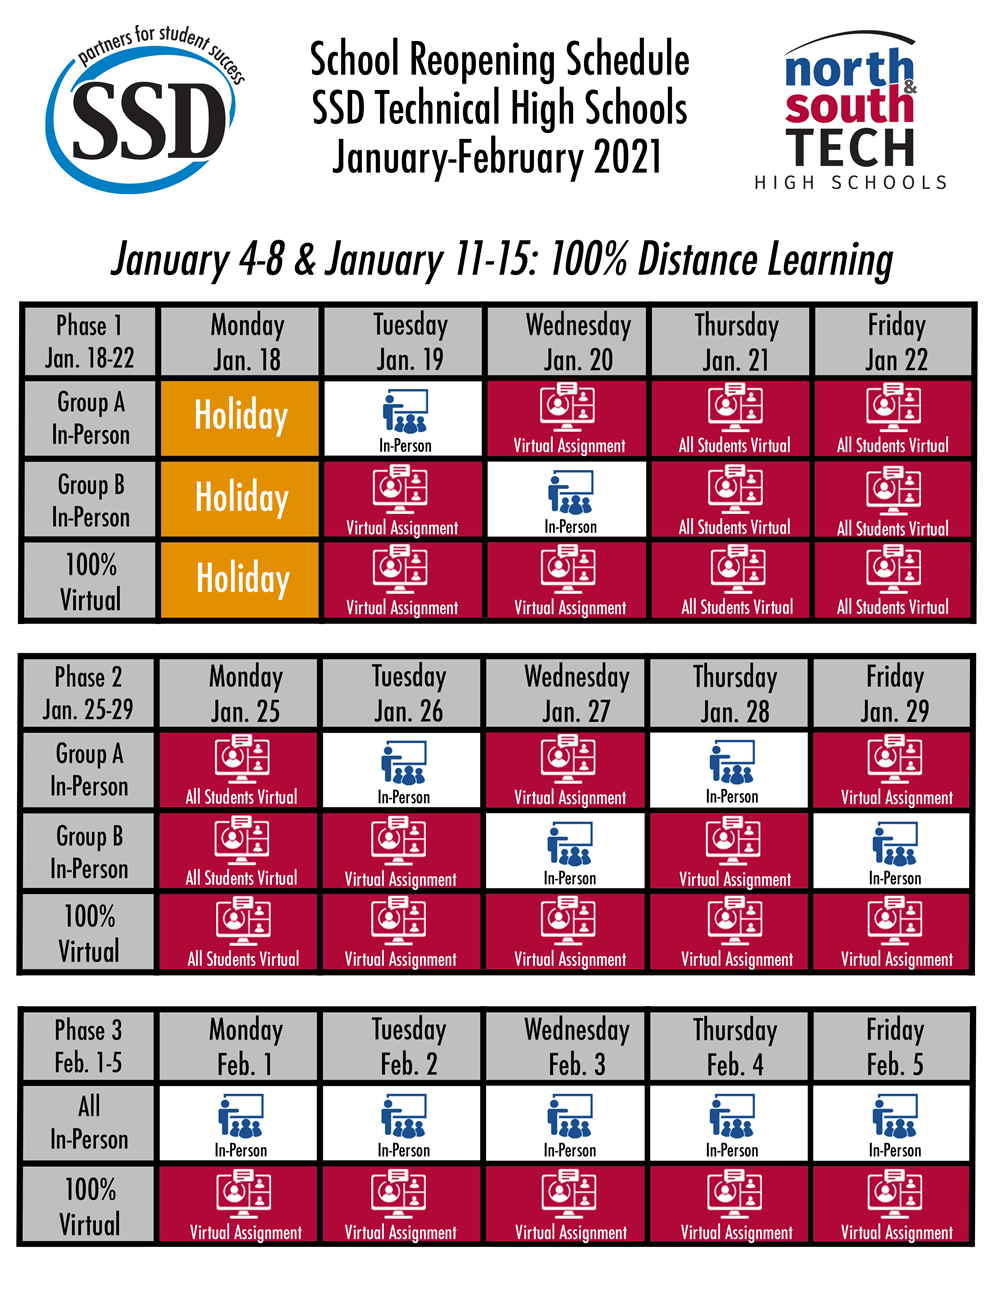 Image of the calendar showing the phased reopening schedule for SSD's technical high schools.